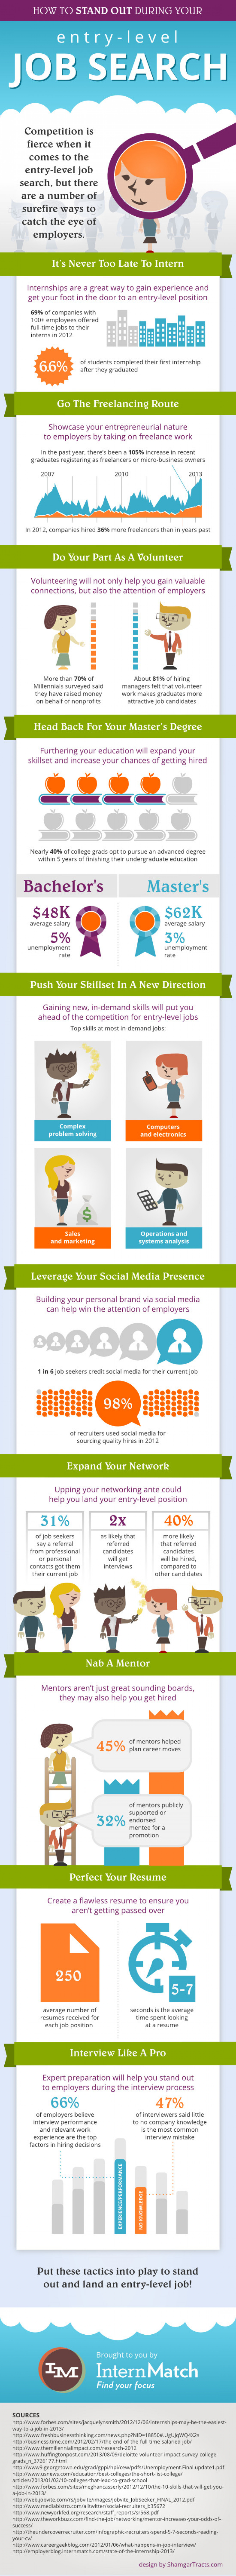 How To Nail Your Entry-Level Job Search Infographic